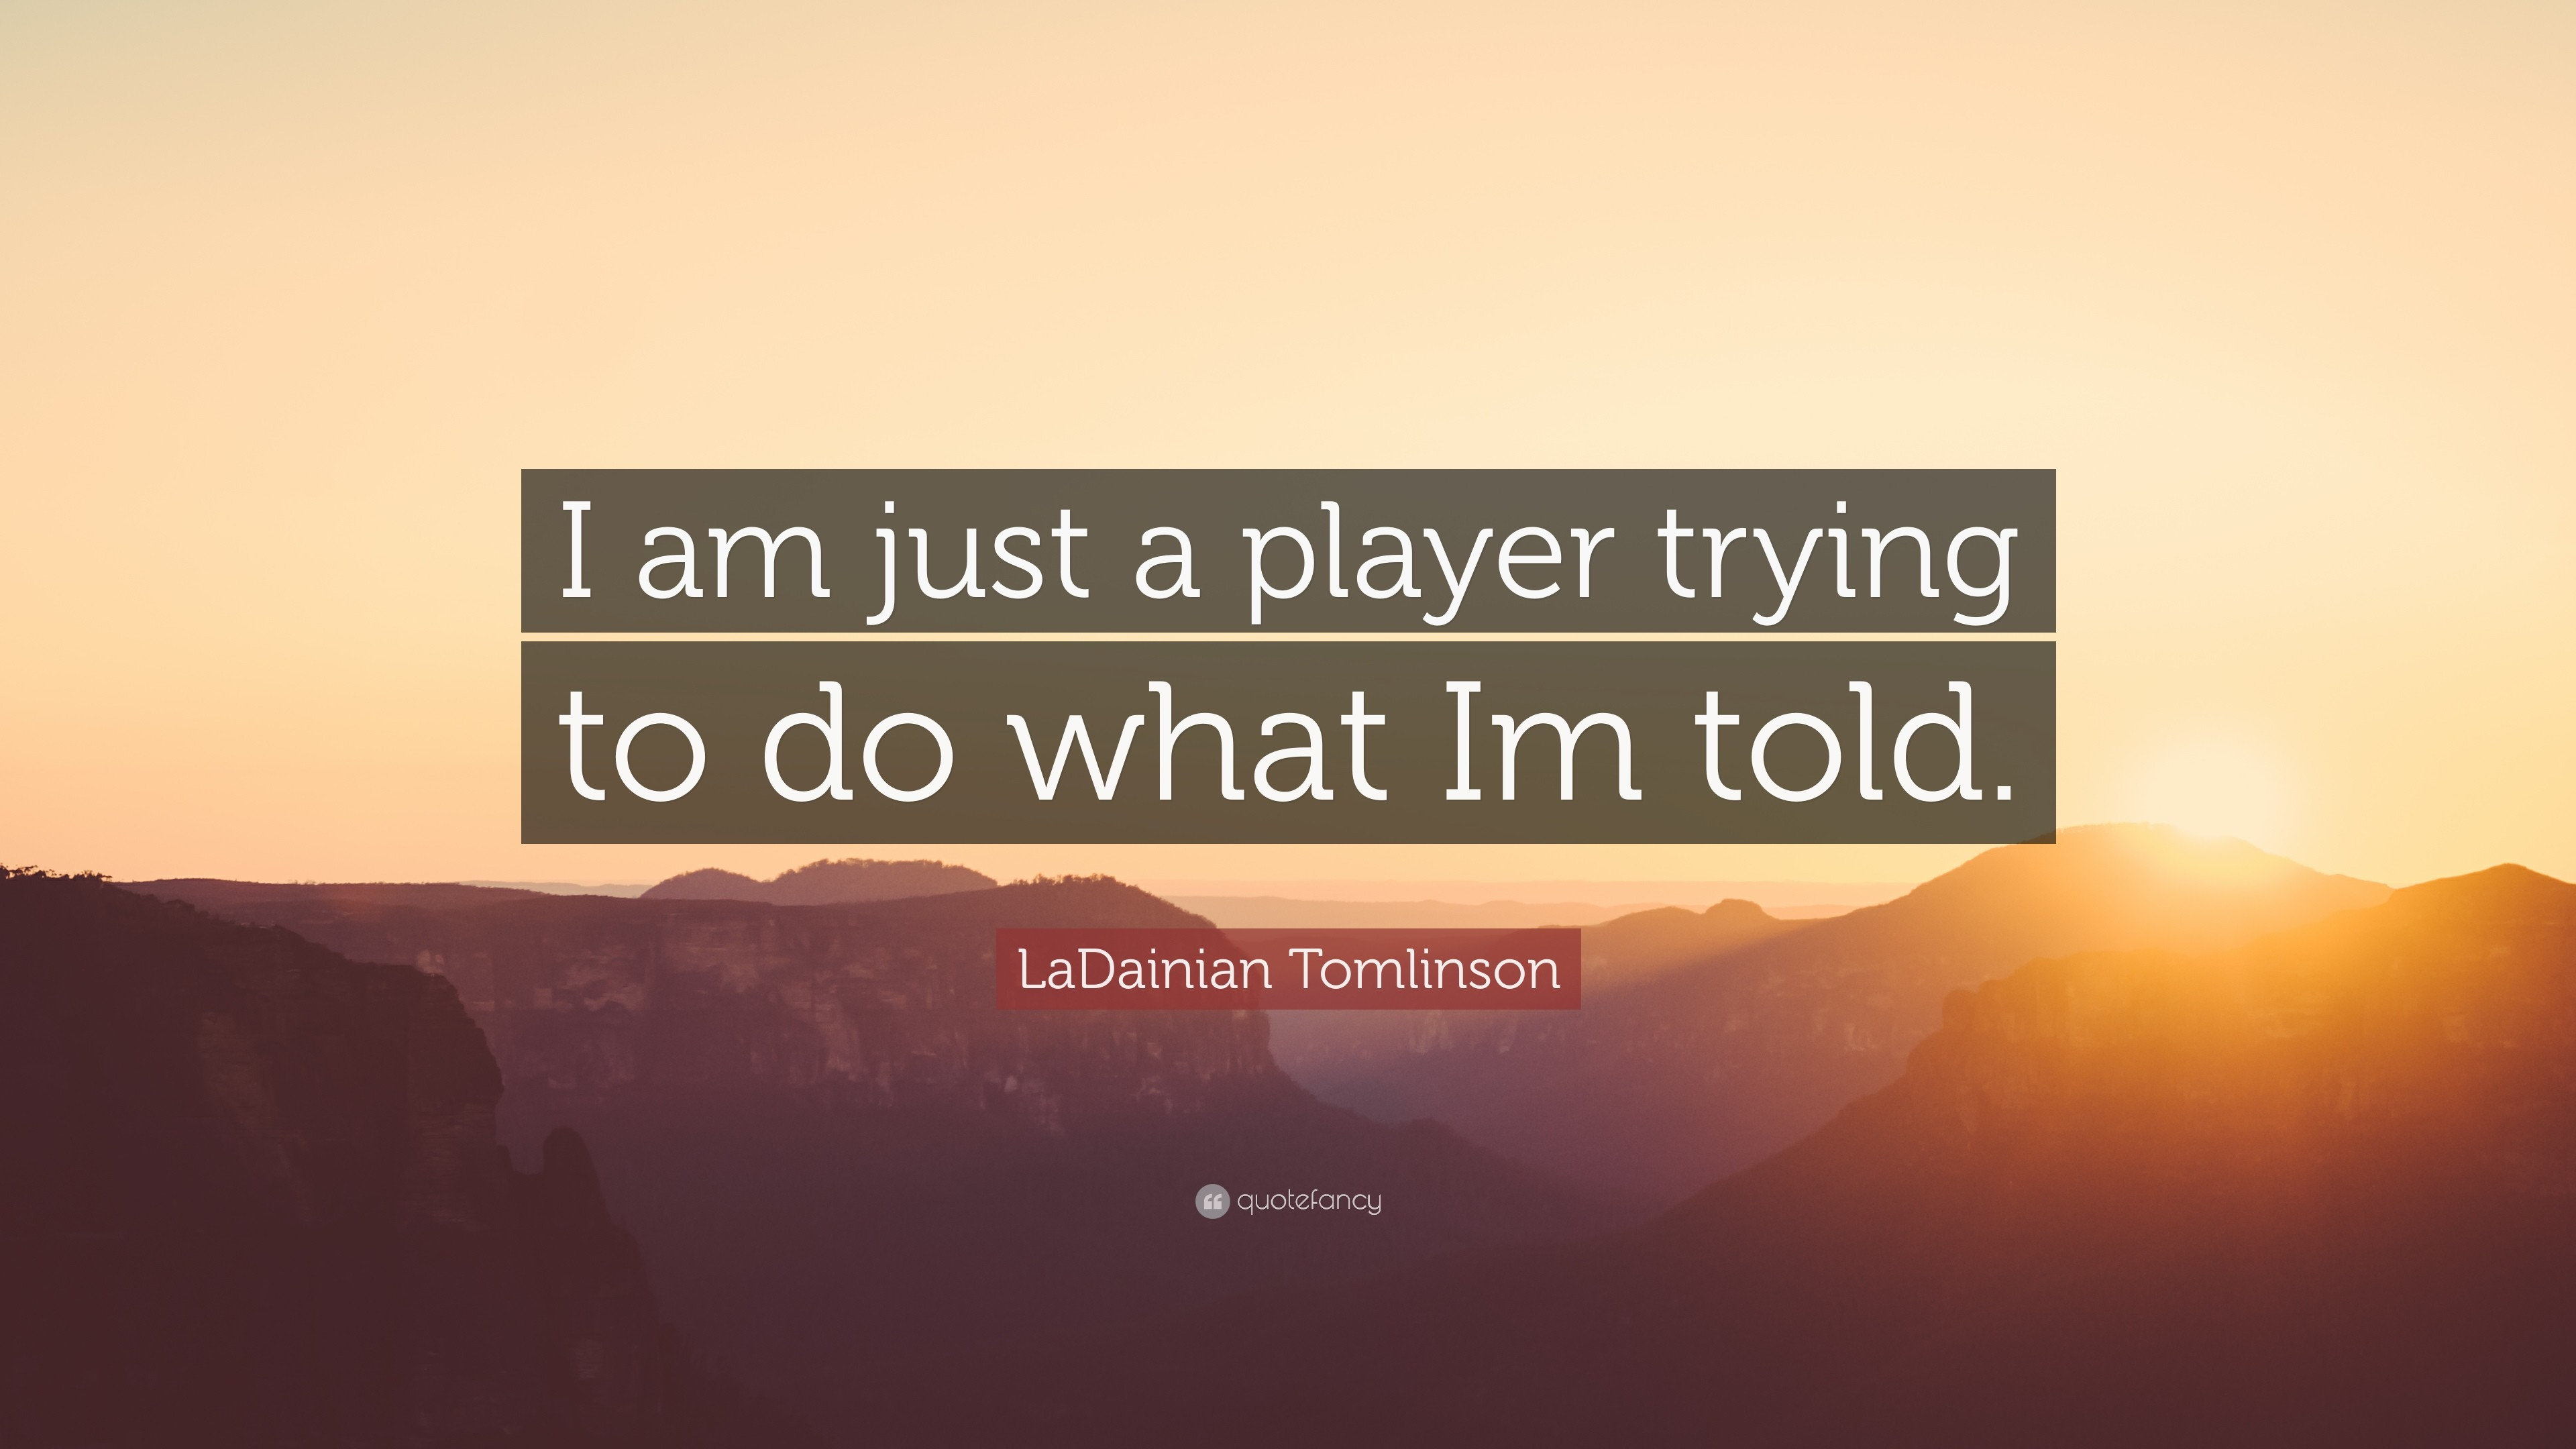 """LaDainian Tomlinson Quote: """"I am just a player trying to do what Im told"""